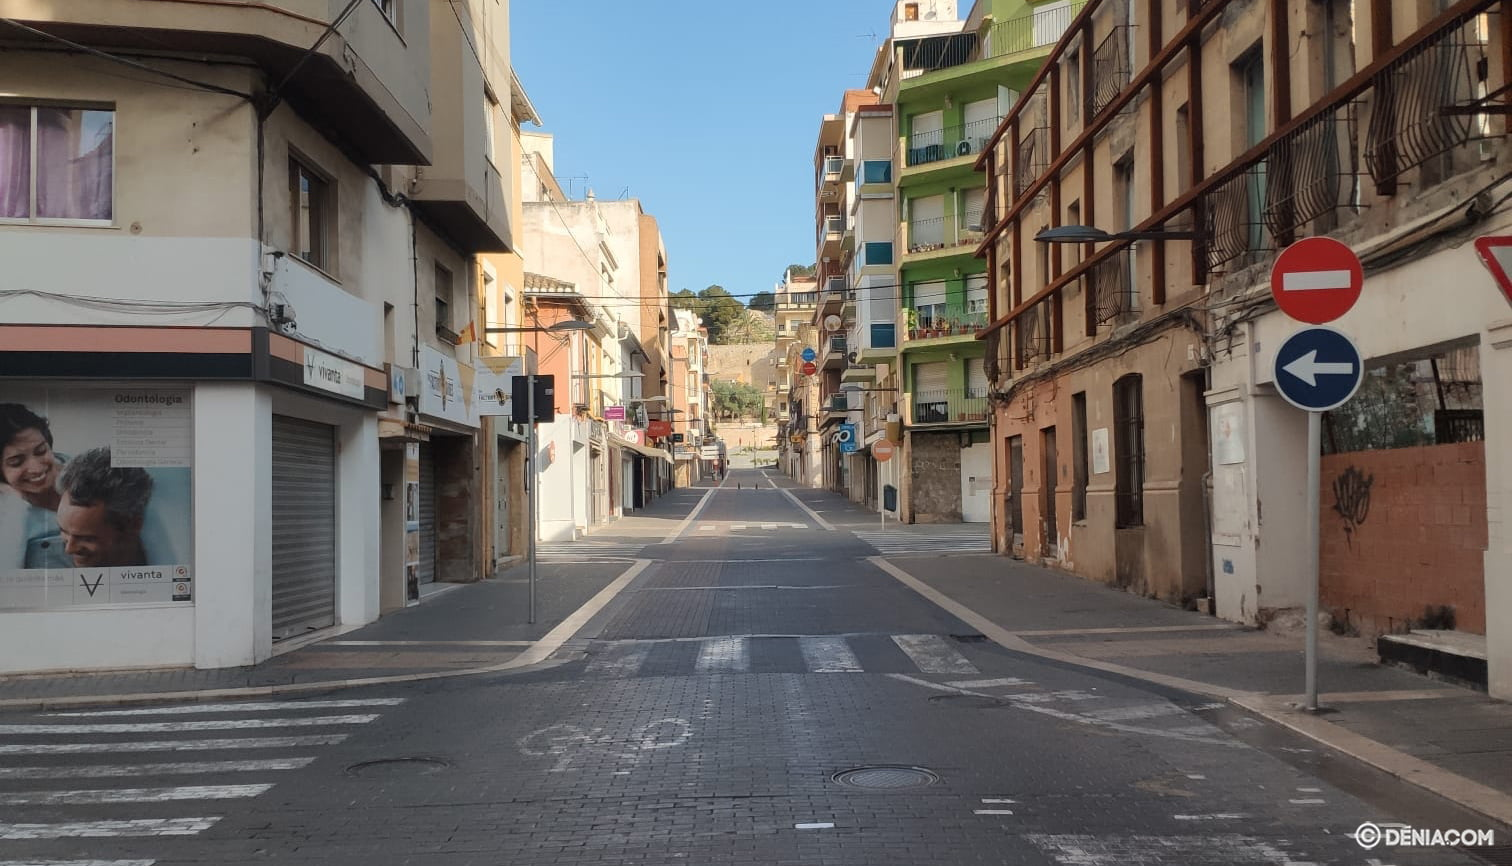 The deserted streets of Dénia 8